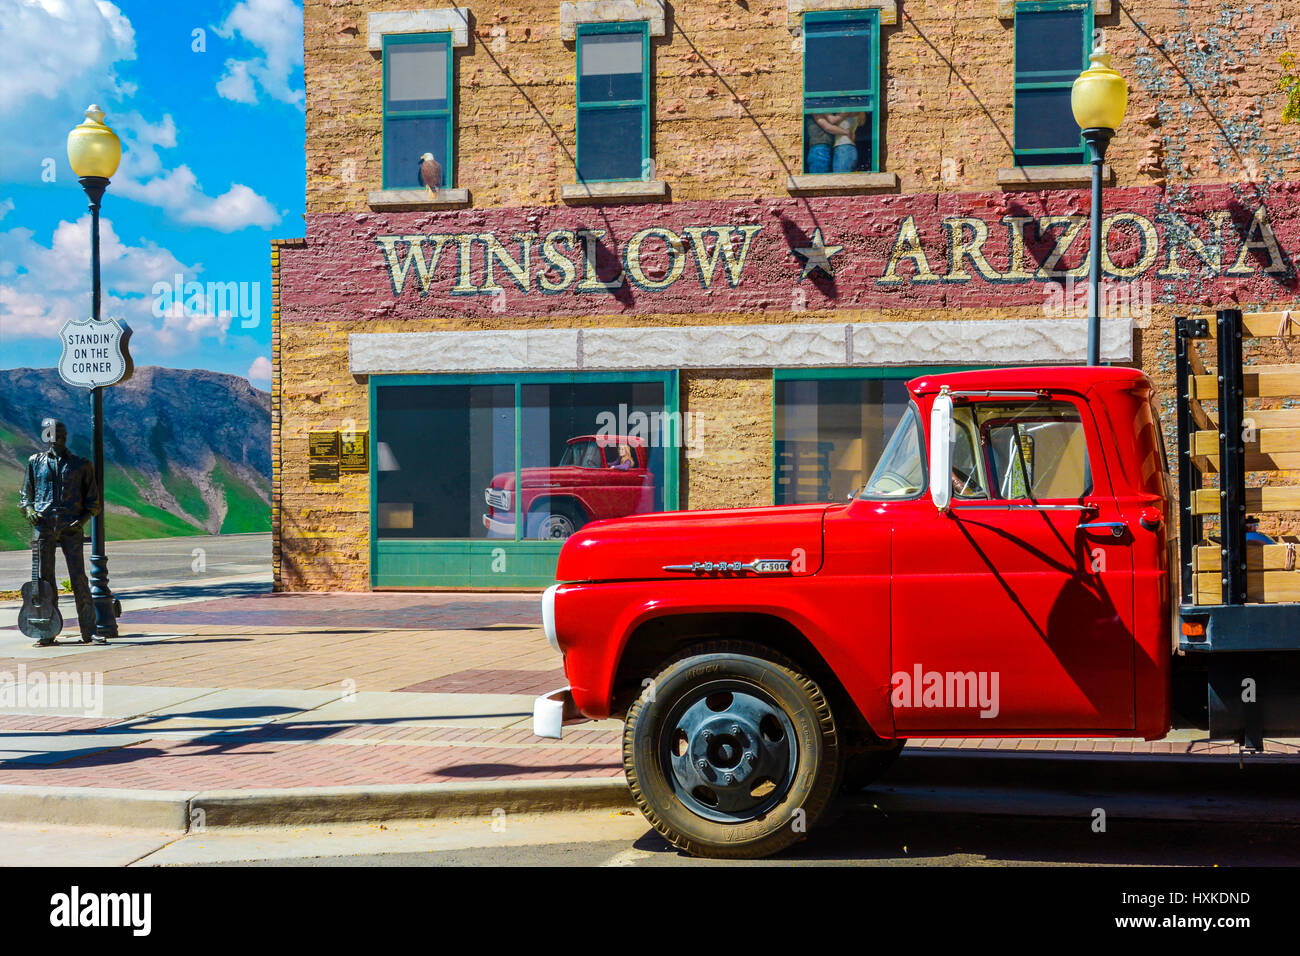 standing on the corner in winslow arizona stock photo royalty free image 136881513 alamy. Black Bedroom Furniture Sets. Home Design Ideas